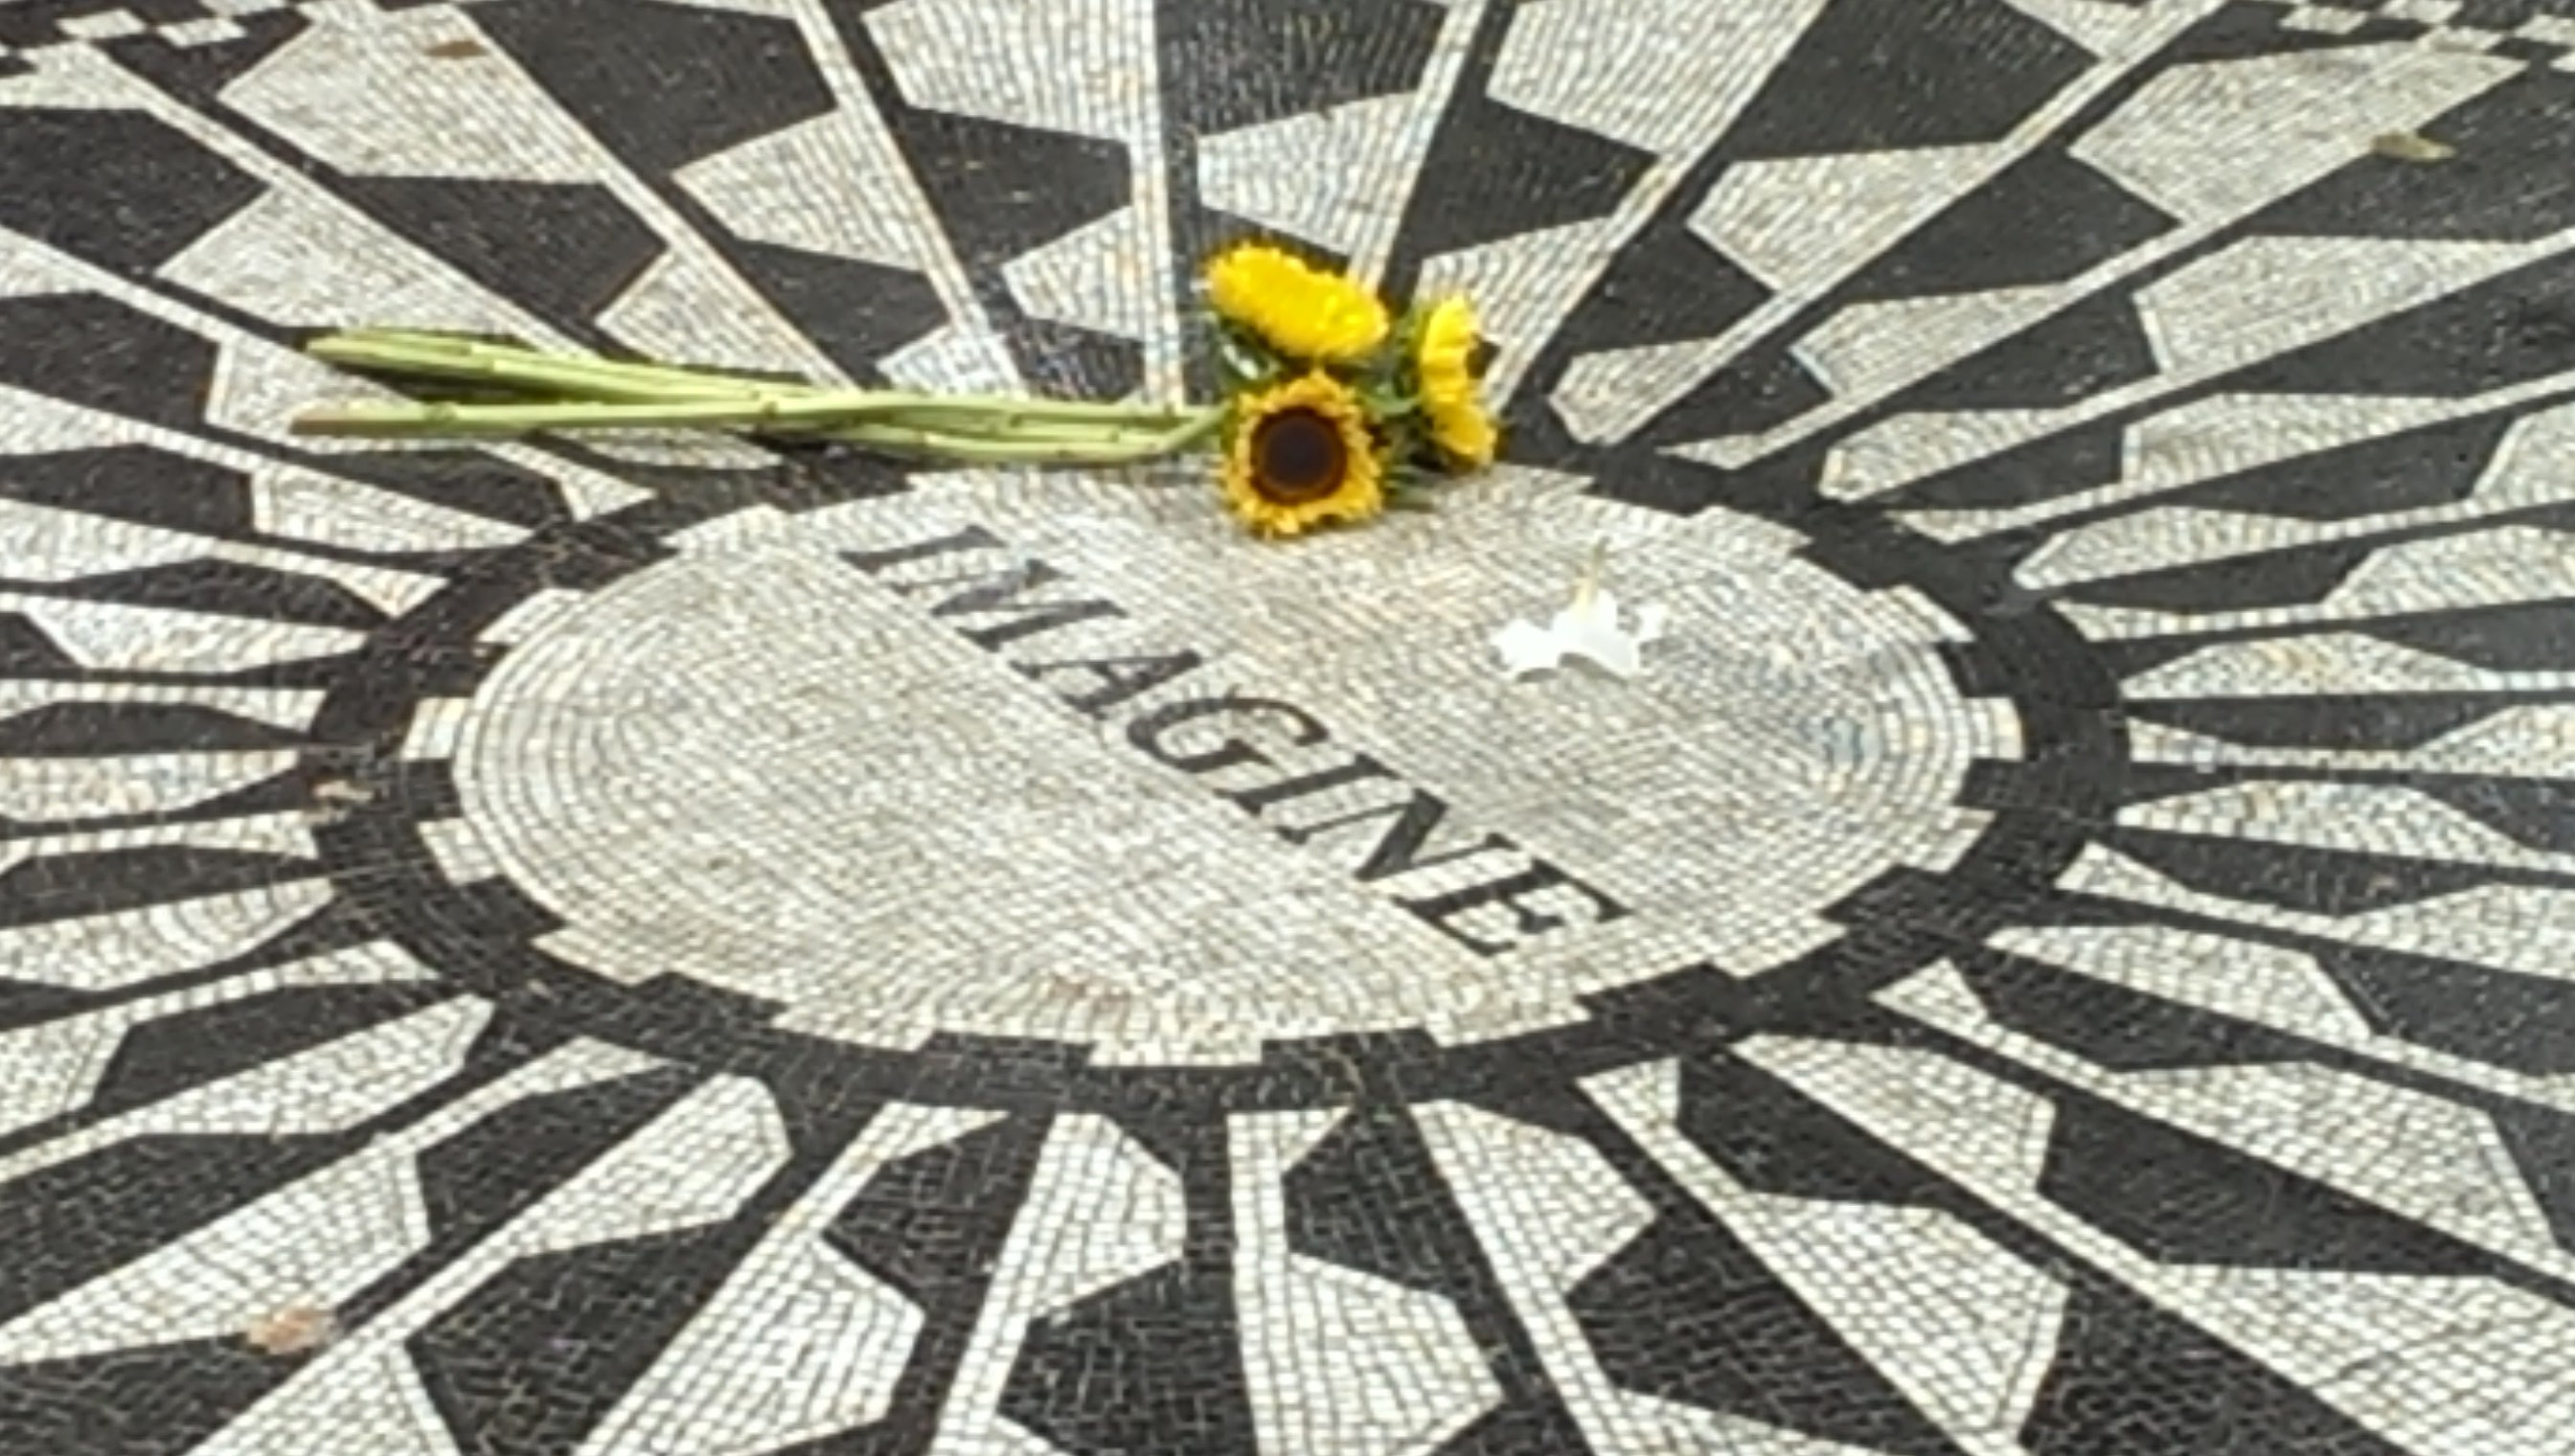 Textura en Strawberry Fields - monumento a John Lennon